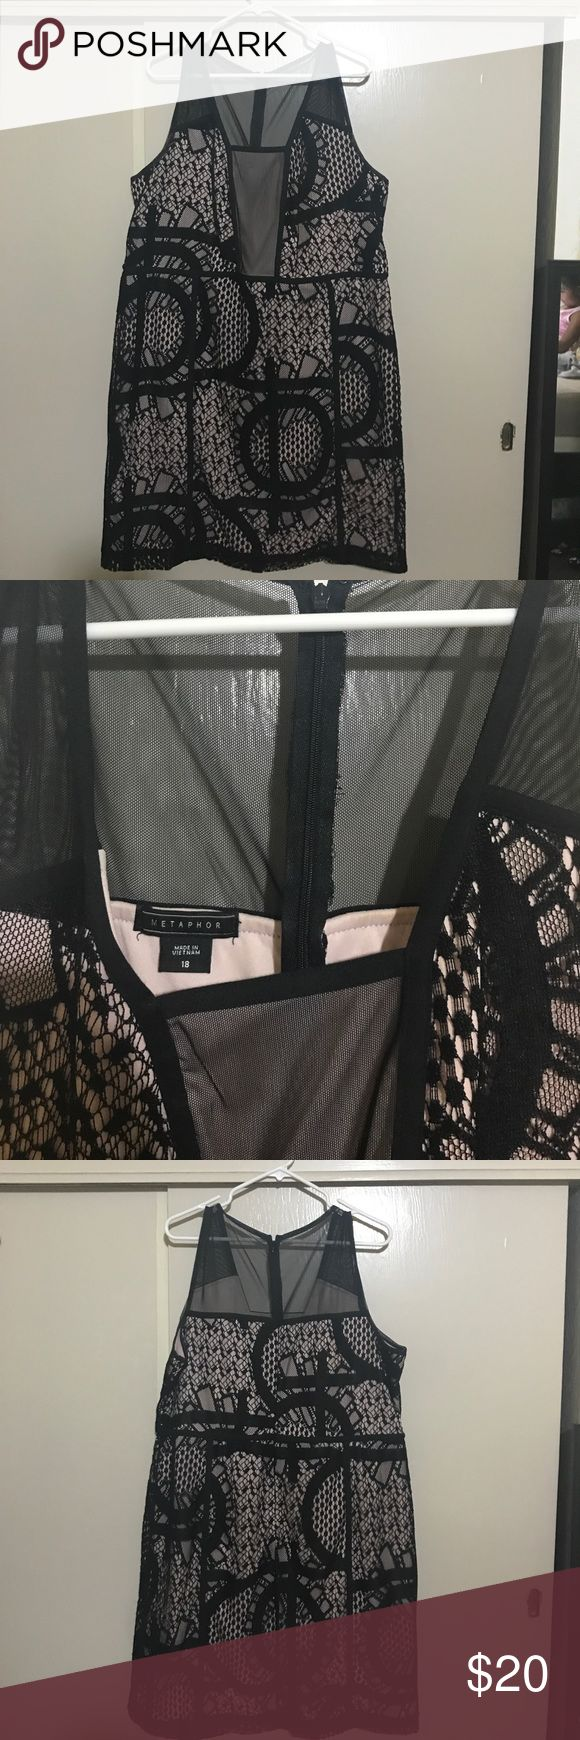 Black/cream party dress. Party dress. Worn 2x only.  Great condition. Metaphor Dresses